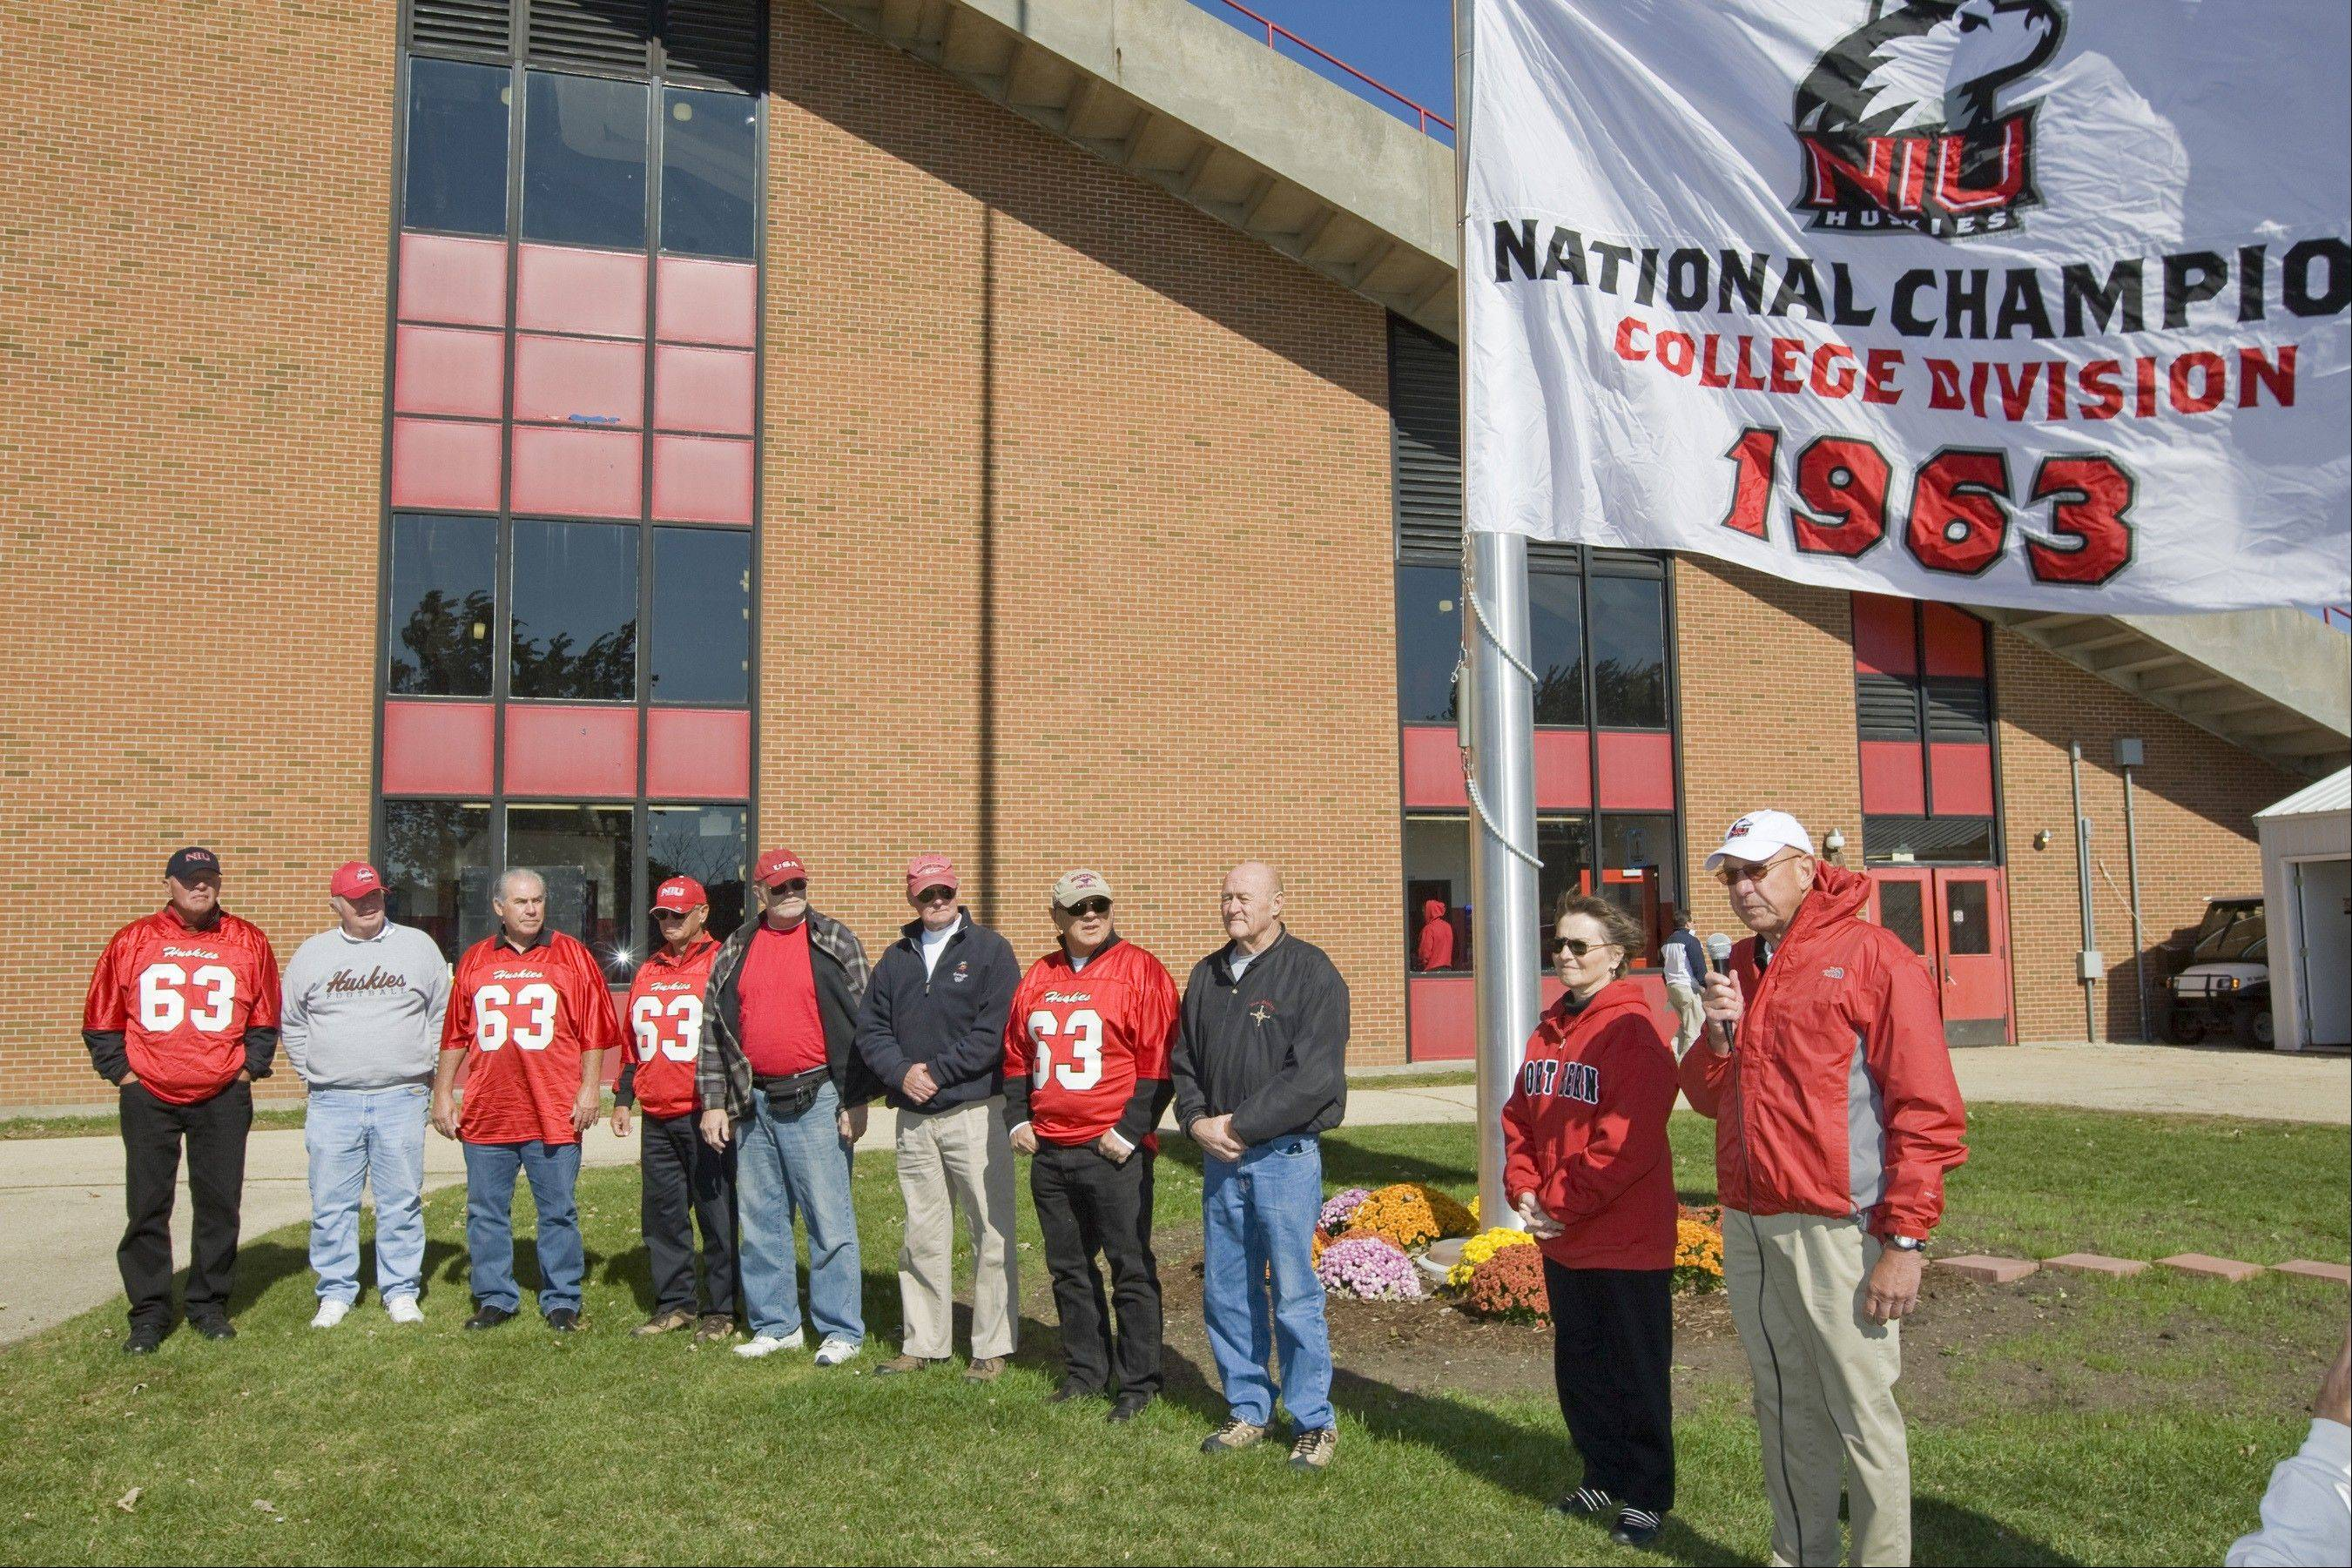 Legendary Northern Illinois quarterback George Bork and some of his 1963 teammates gathered last month for a flag poll dedication in their honor during NIU Homecoming activities.